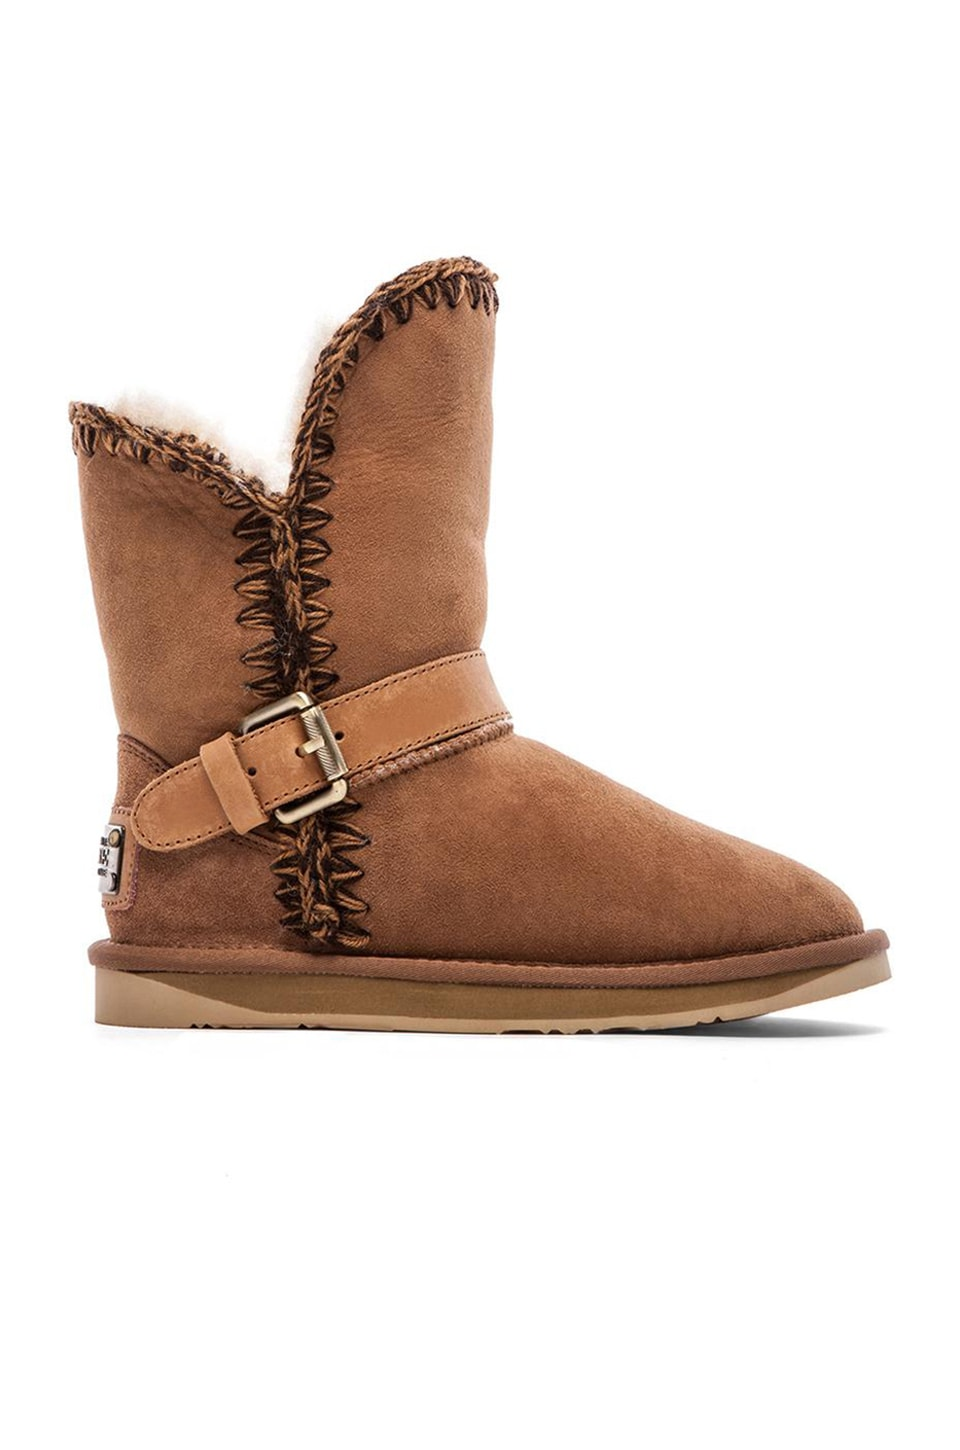 Australia Luxe Collective Dixie Boot in Chestnut